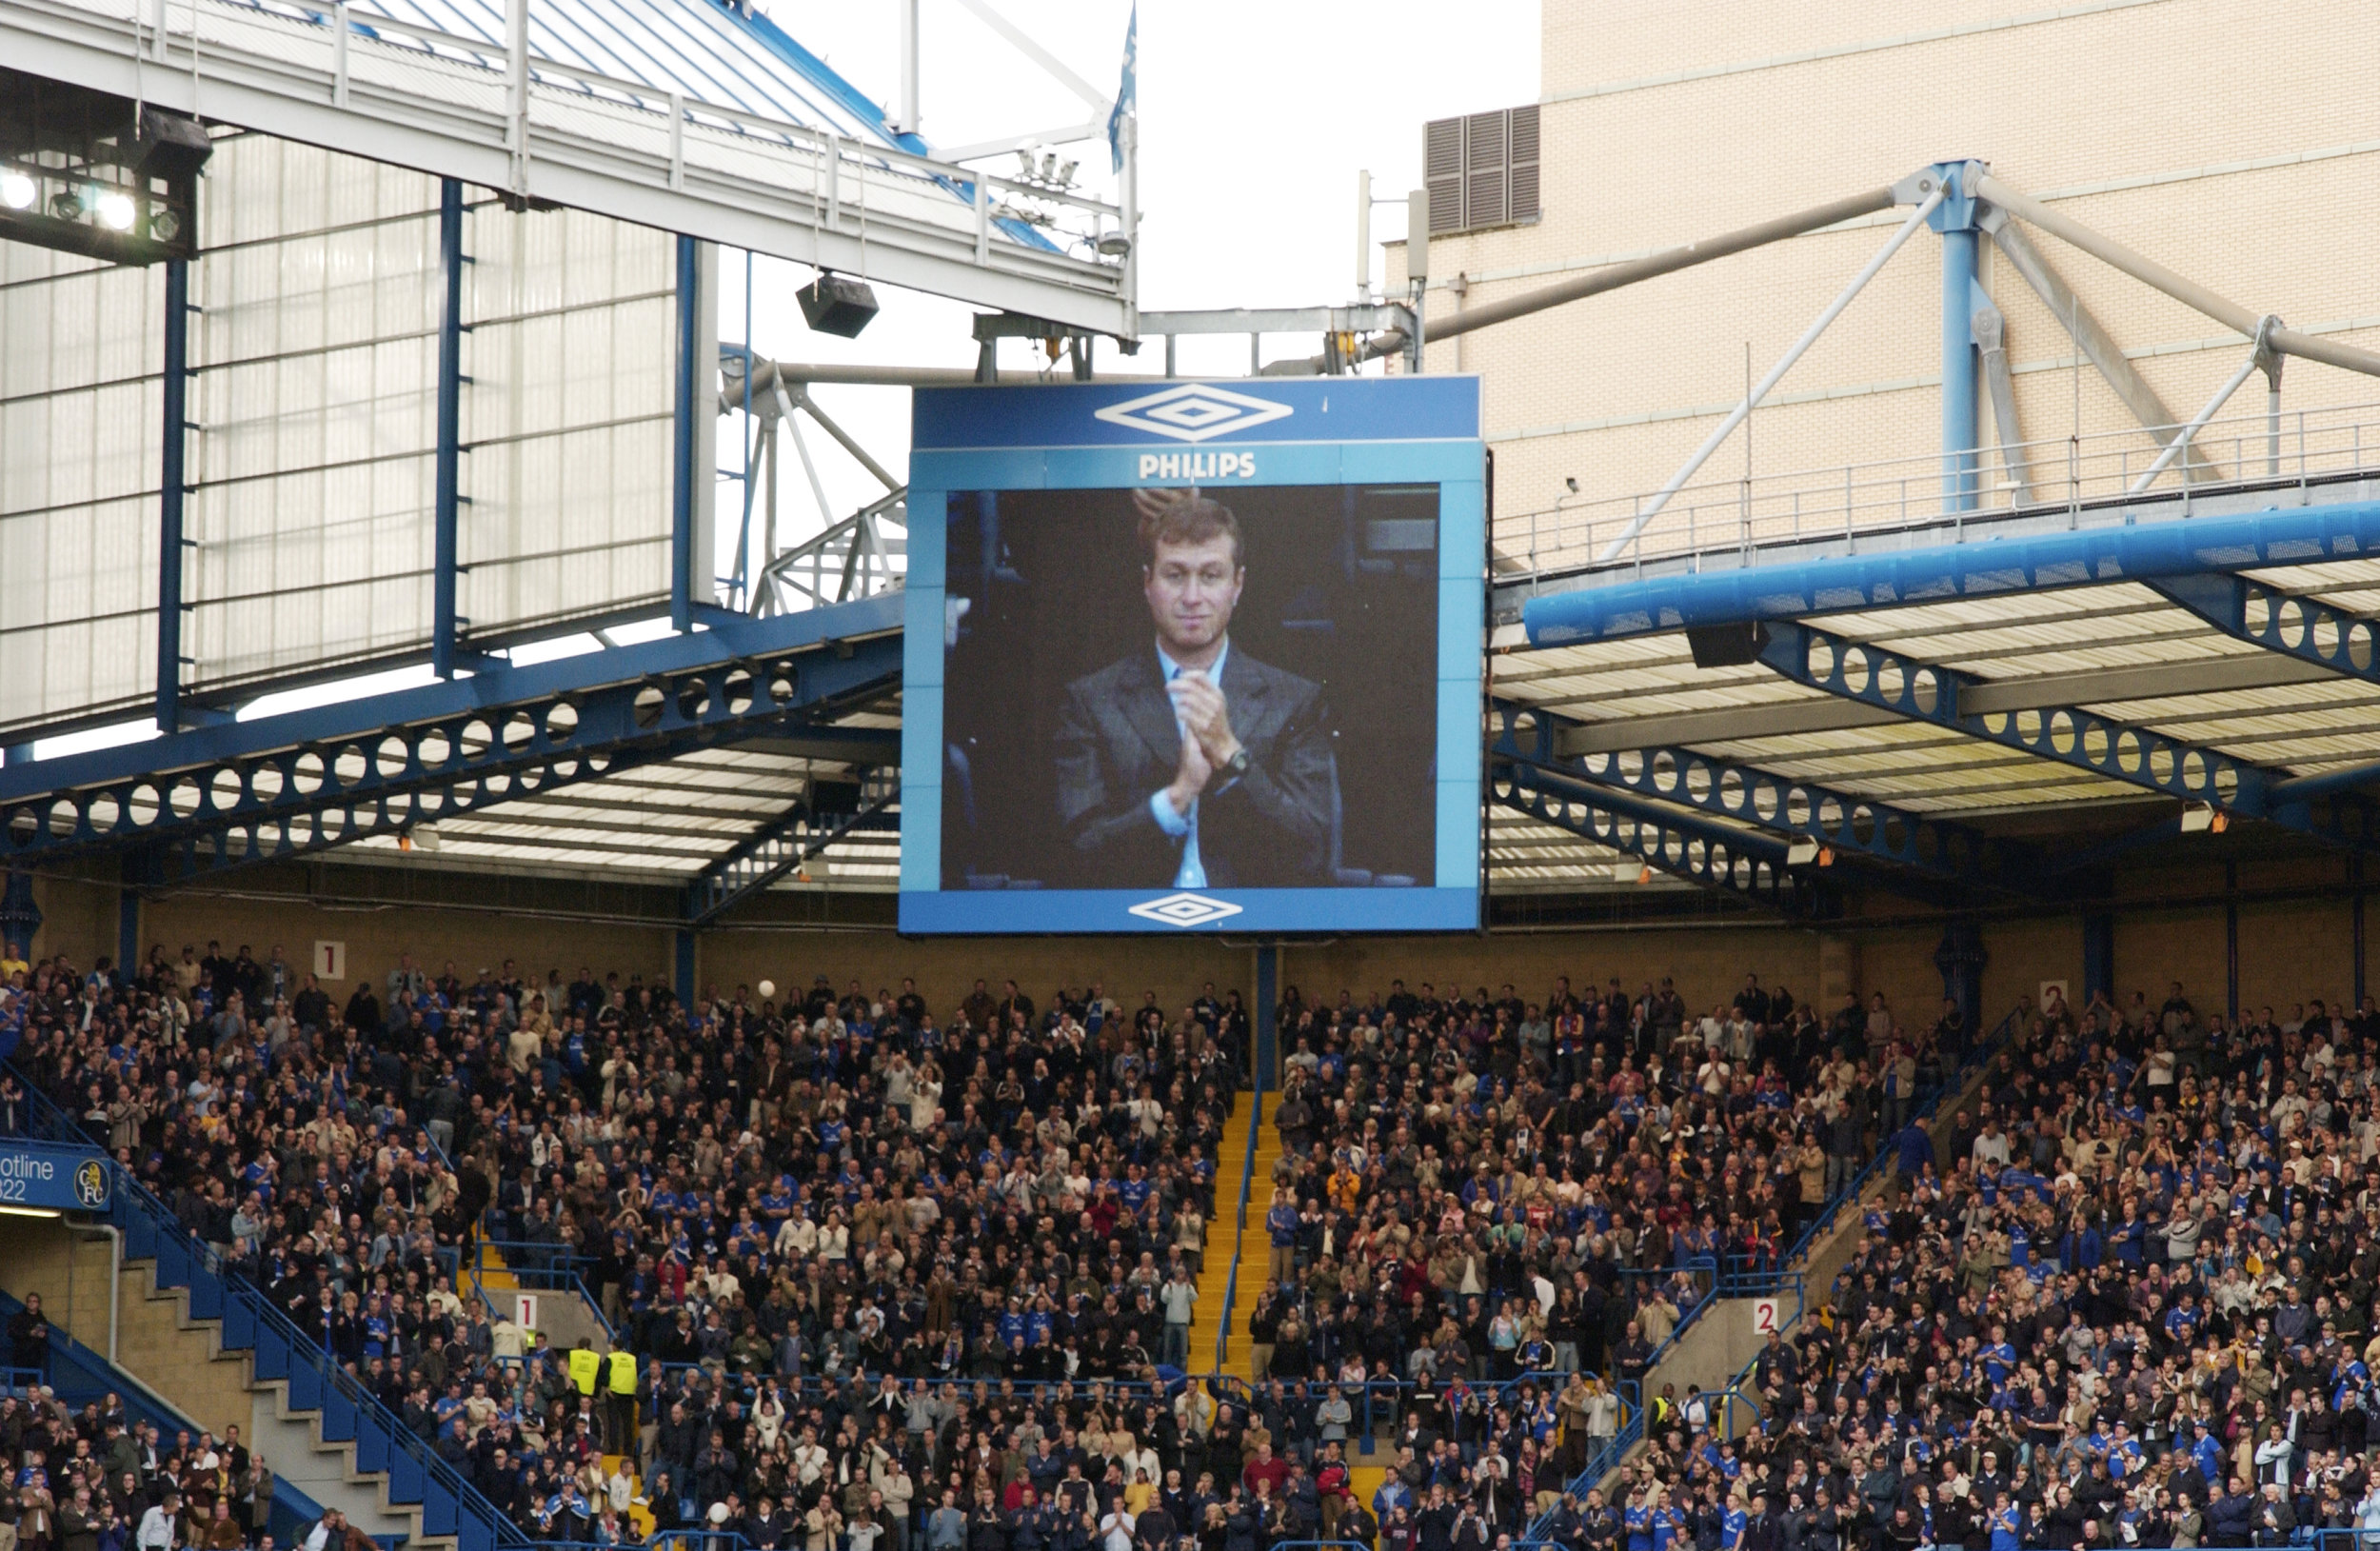 Chelsea owner Roman Abramovich at Stamford Bridge, 2003. (John Ingledew/Chelsea FC via Getty Images)